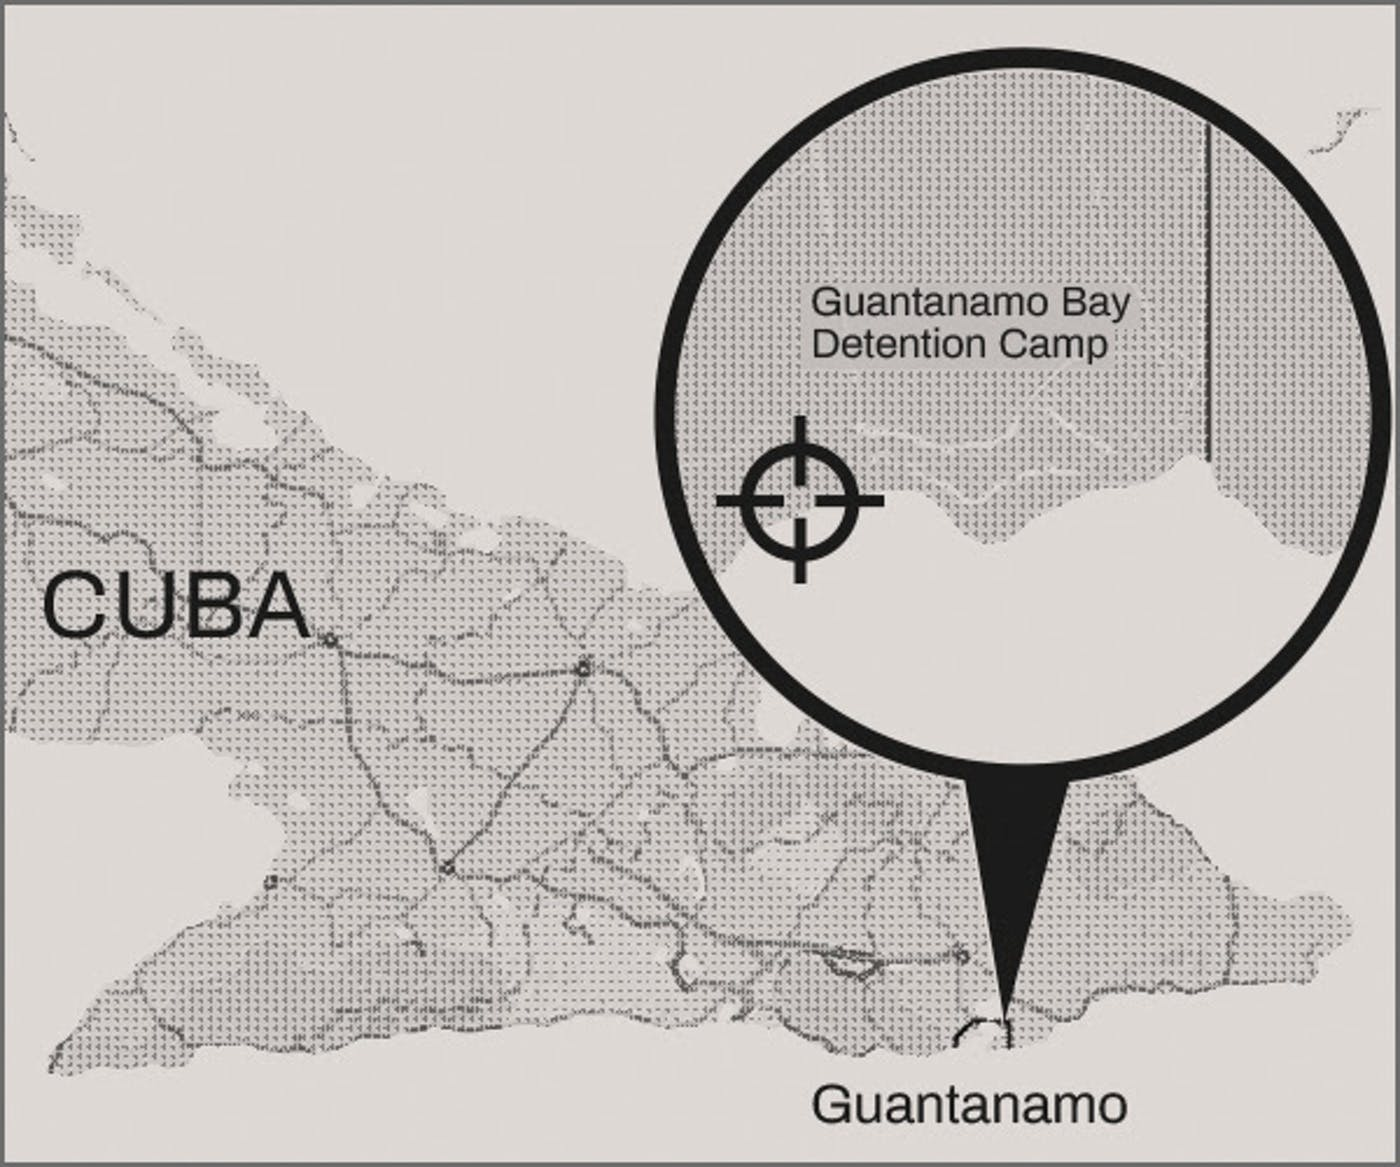 Secret Immigration Detention Camps Across The Us  Topic  Treatment Of Haitian Refugees Swirled On The Mainland The Ins Was  Experimenting With A New Detention Site Plus Miles Away At Guantnamo  Bay Cuba